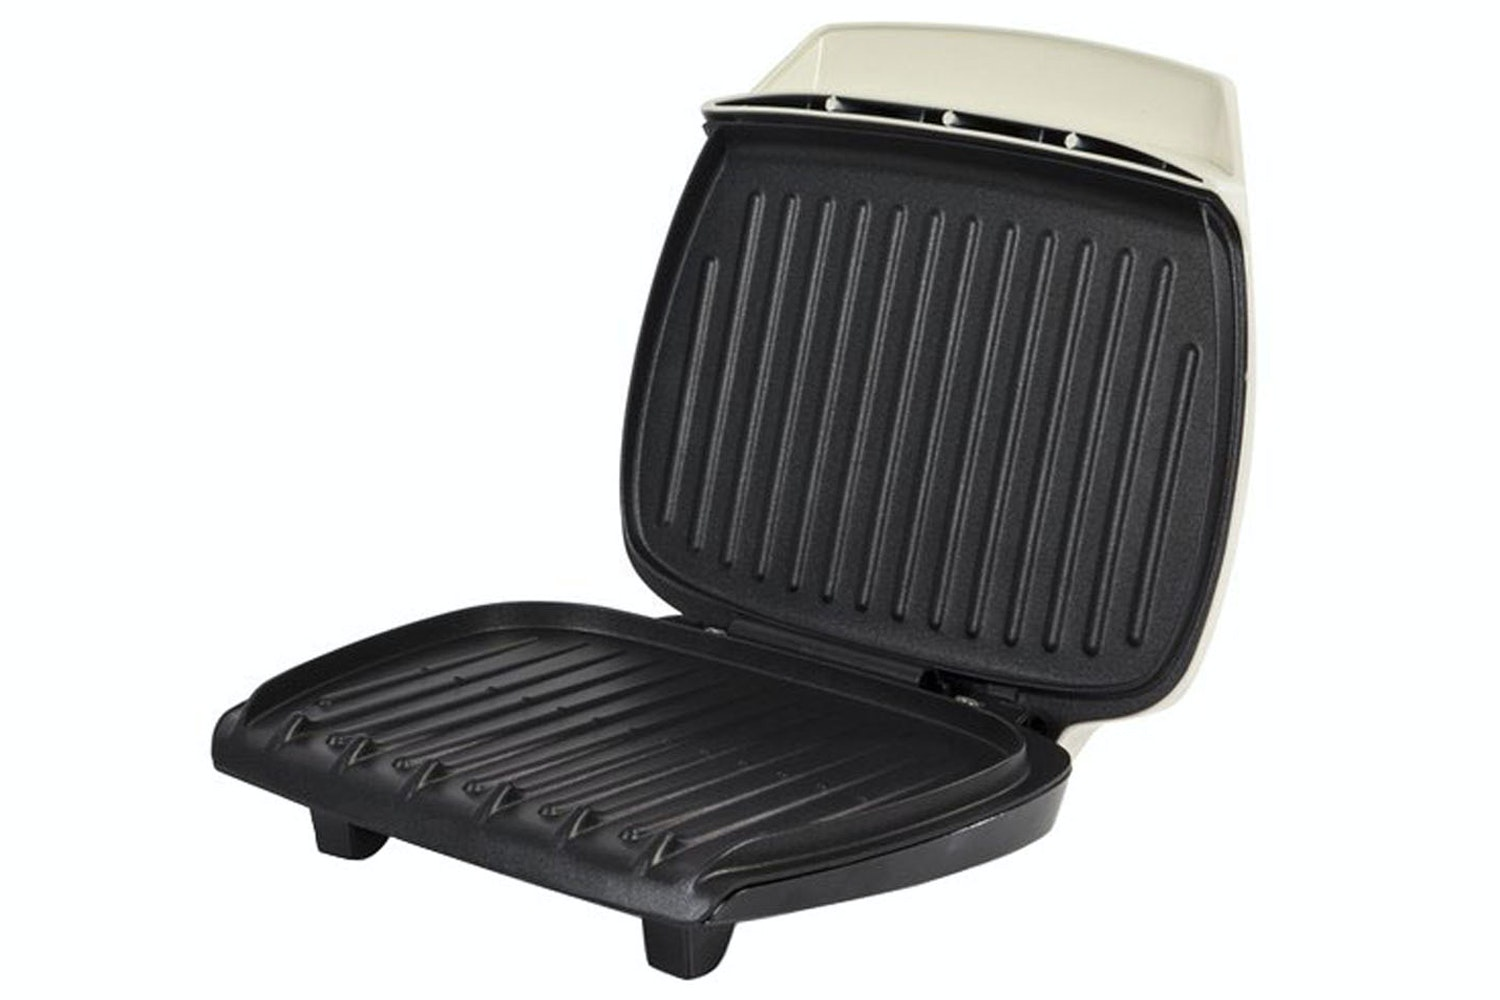 George Foreman Cream 5 Portion Grill | 18873